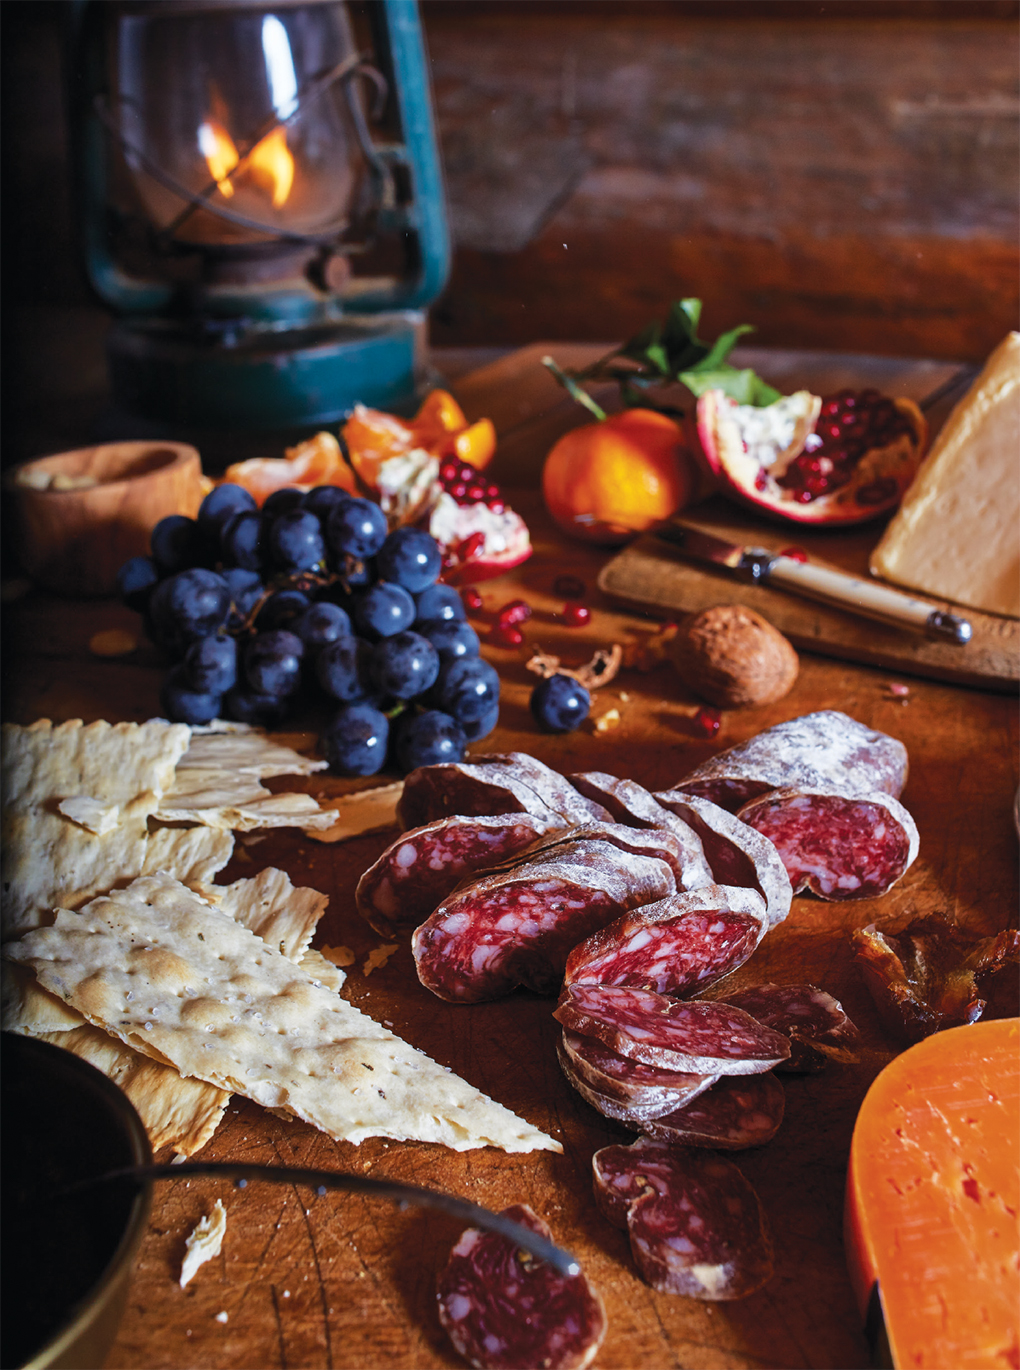 Cheese board with meats, fruit and cheese